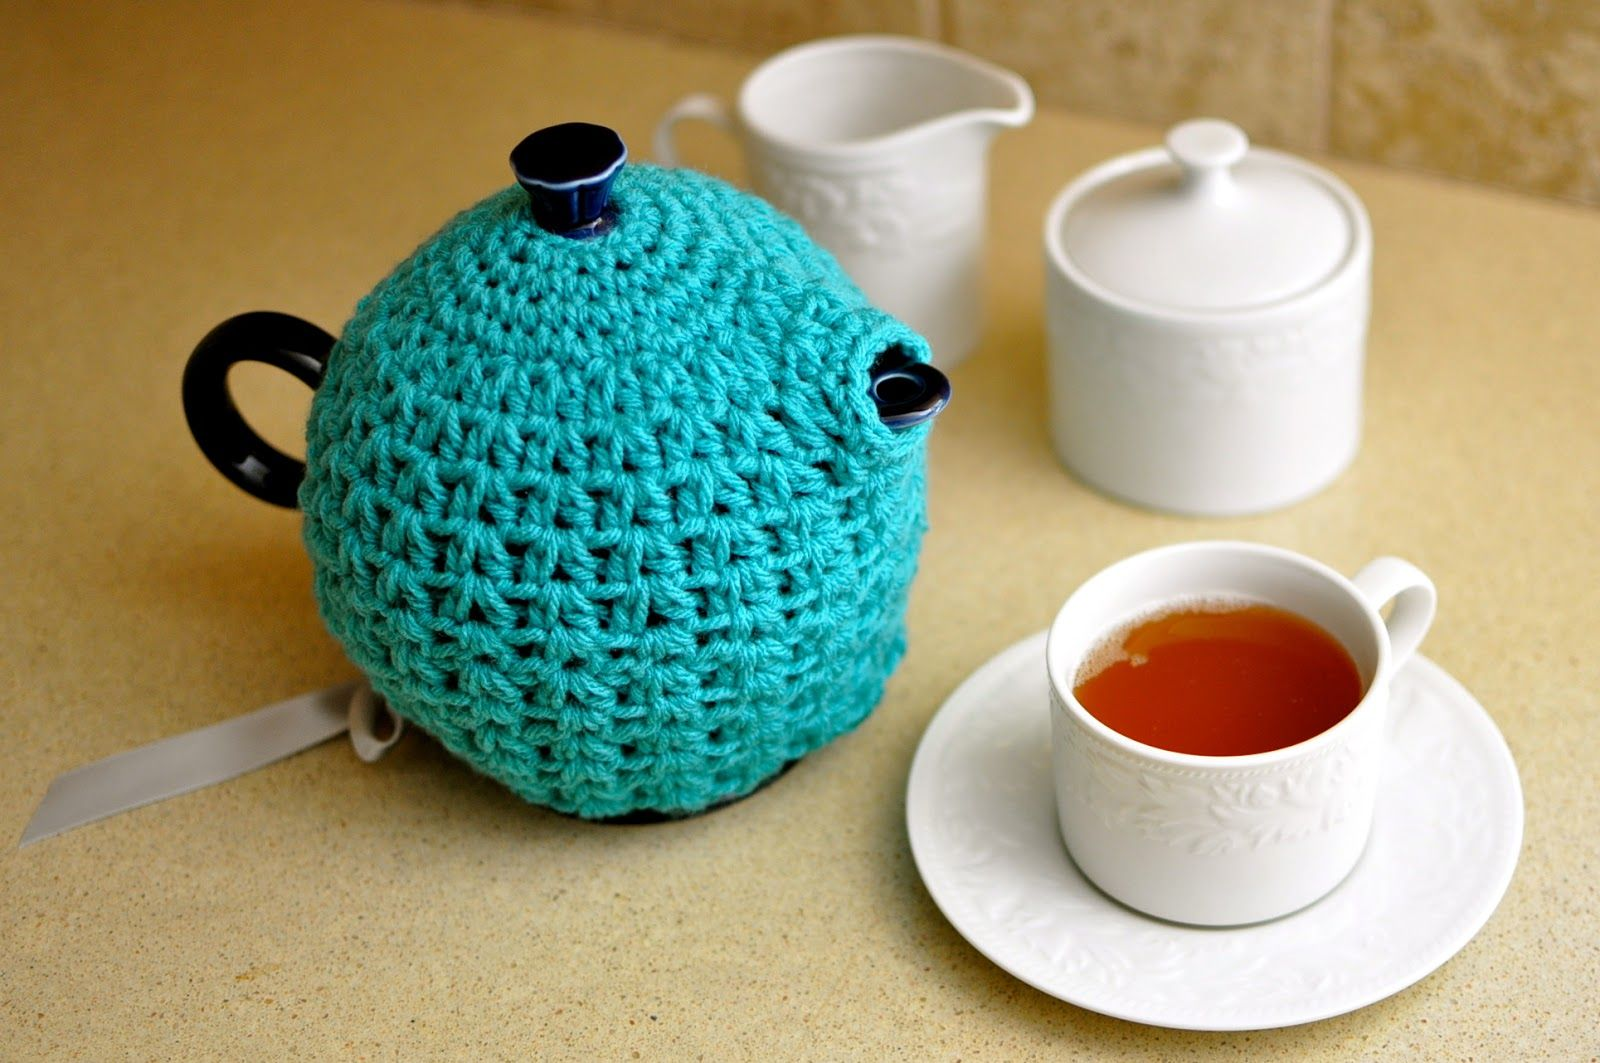 15 Quick and Easy Crocheted Tea Cozies | craft ideas | Pinterest ...